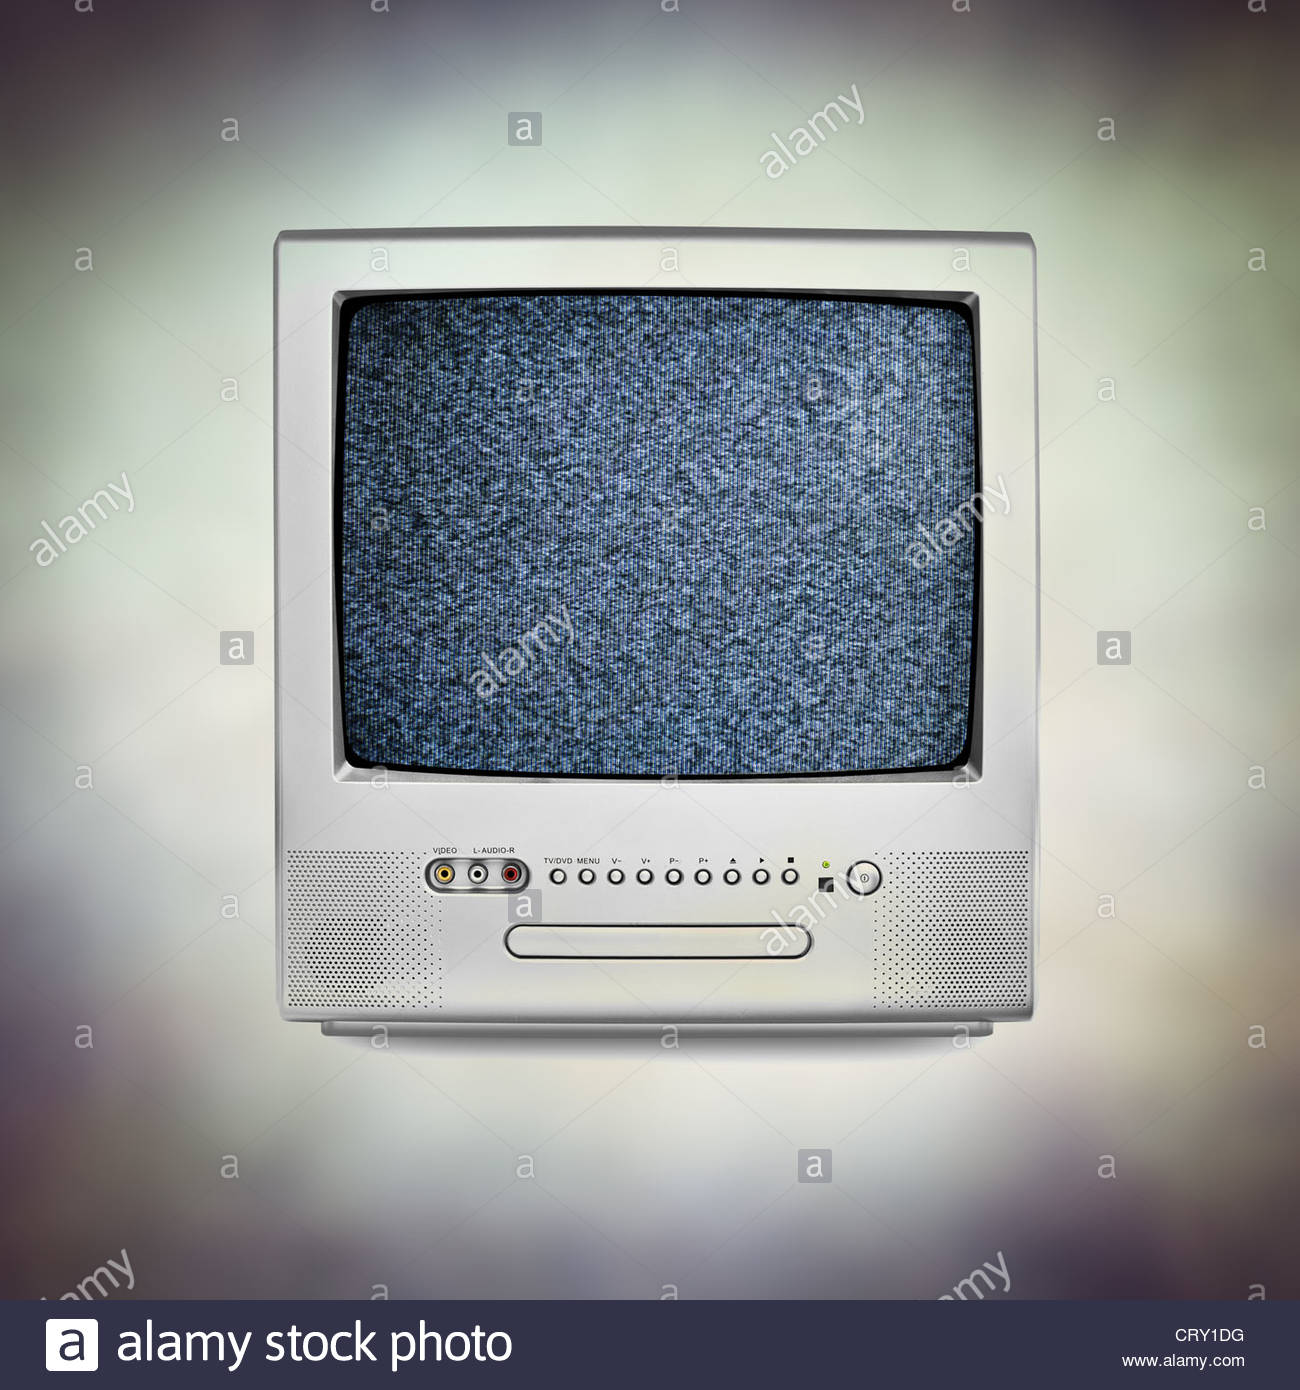 television static - Stock Image